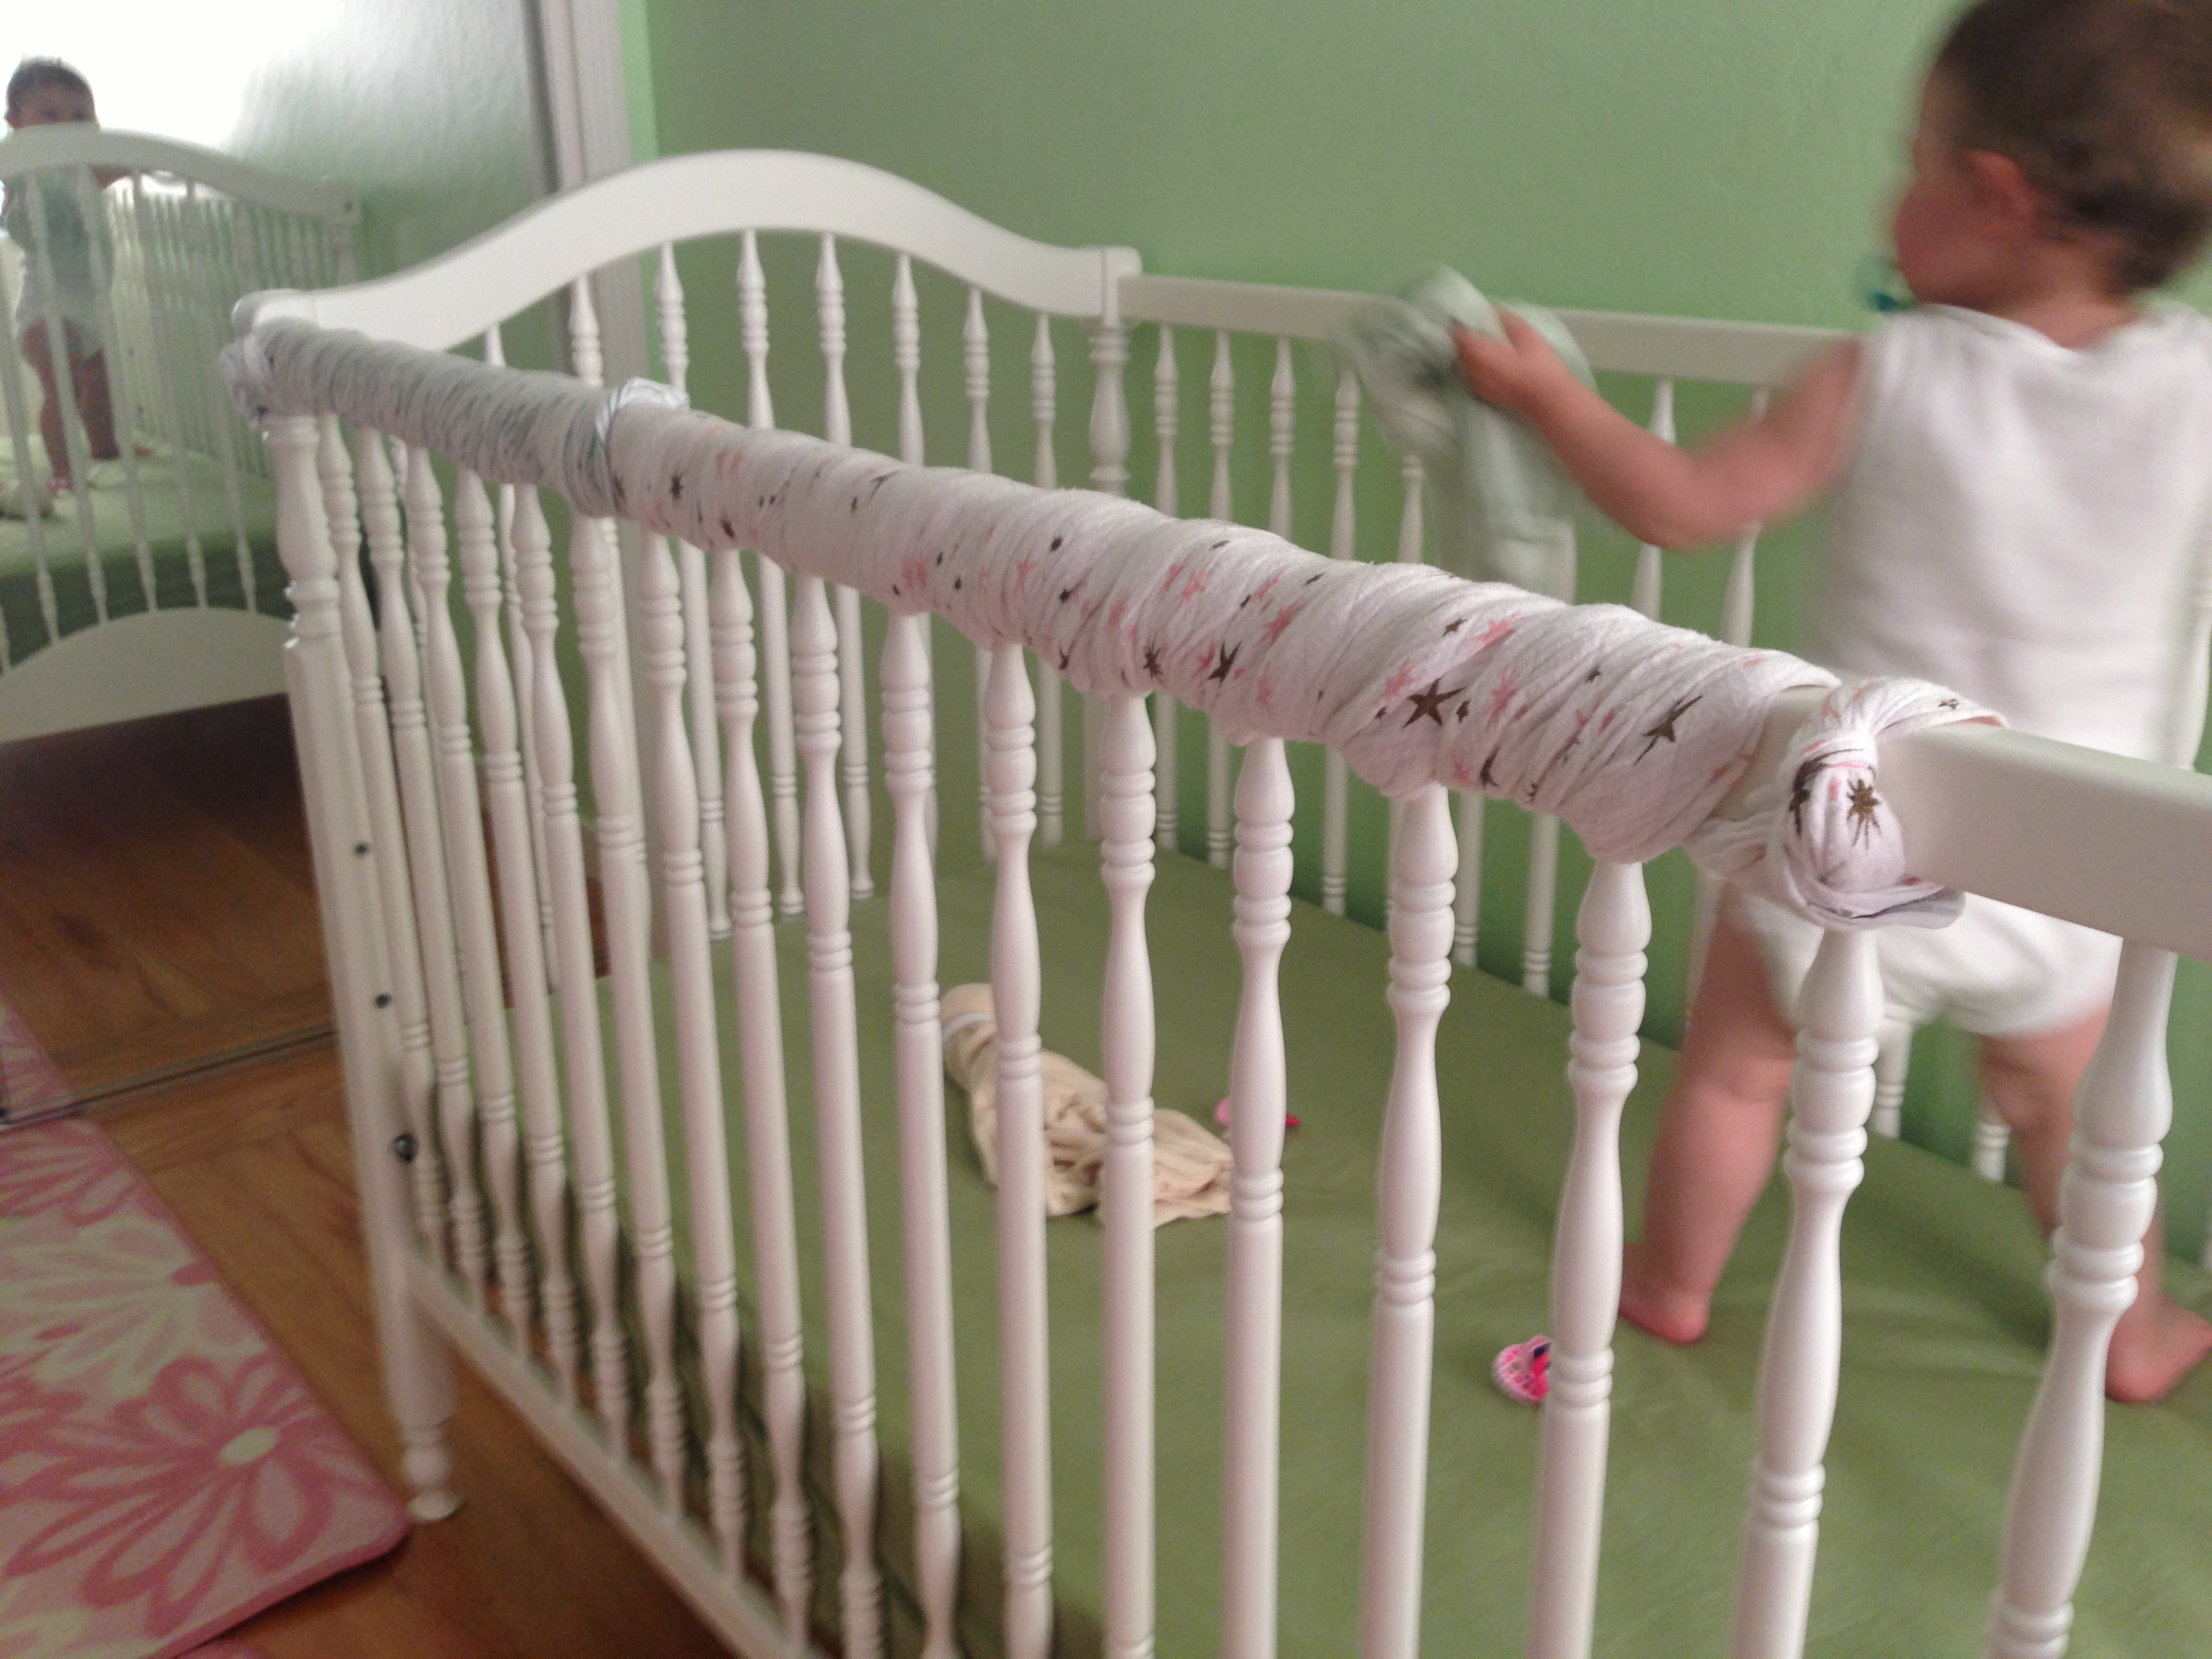 Today S Hint How To Cheaply Save Cribs From Little Teeth Hint Mama